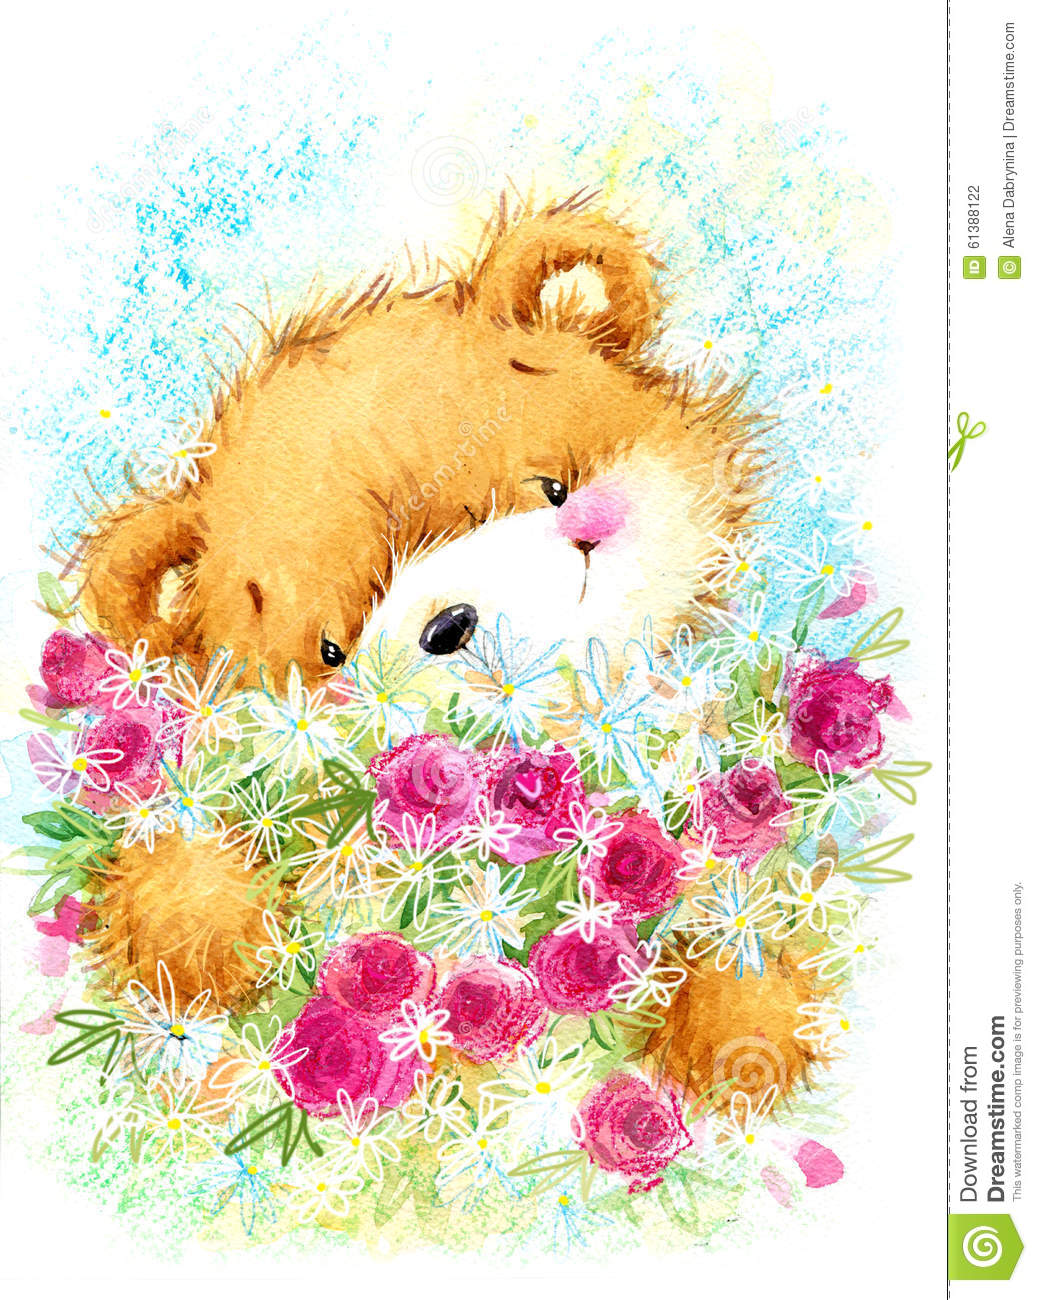 Cute Toy Teddy Bear And Birthday Card Background Stock Illustration